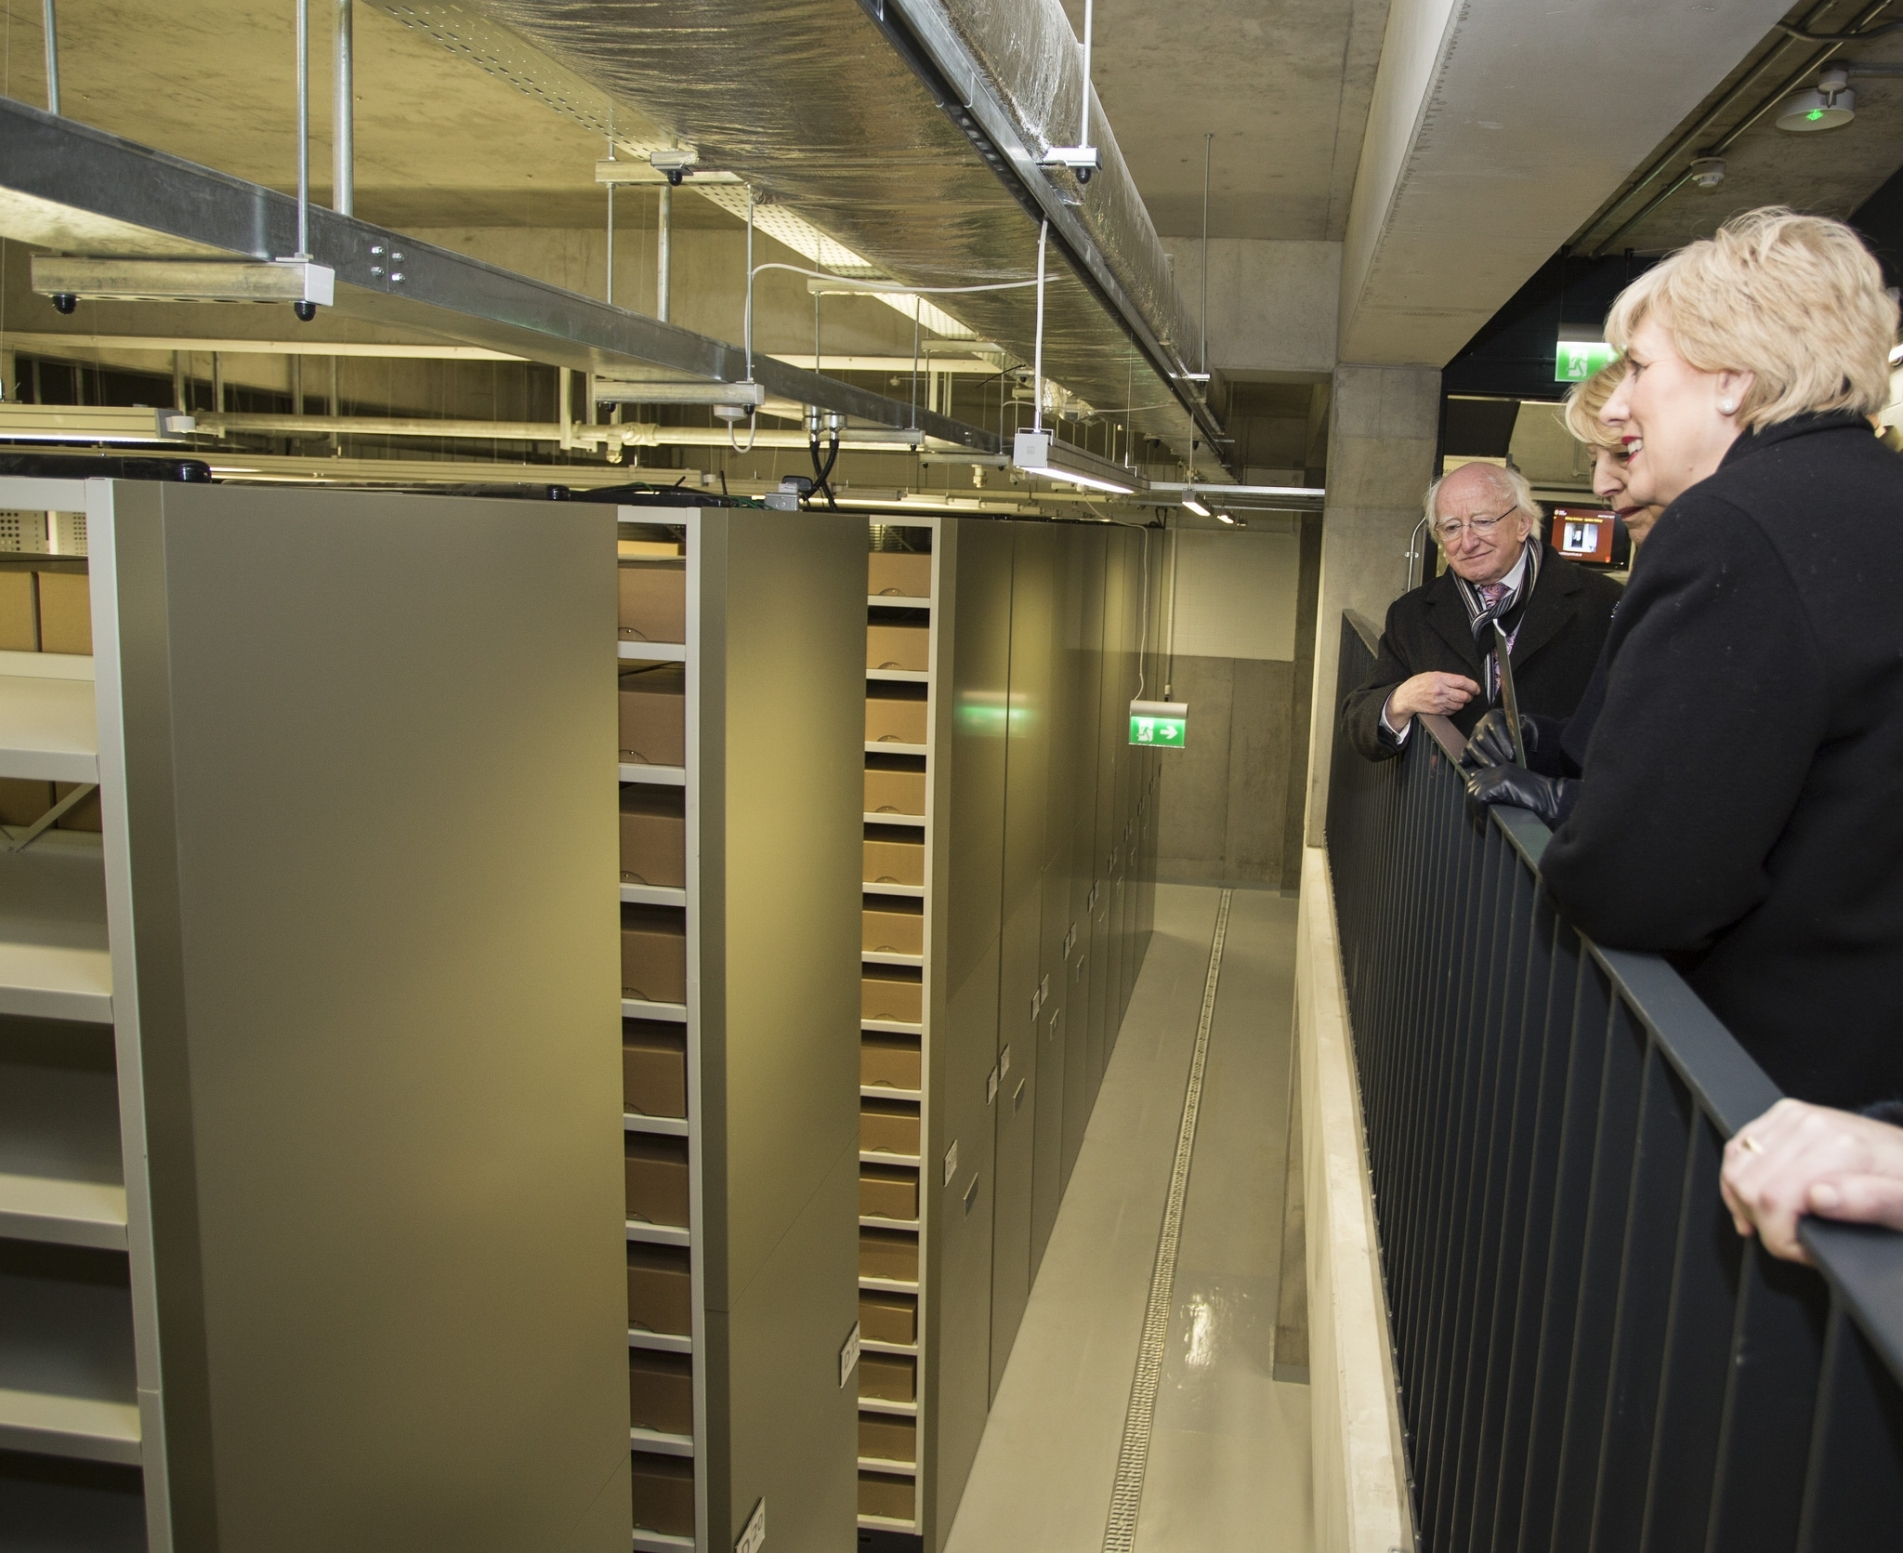 Largest Installation of Electronic Mobile Shelving in Ireland